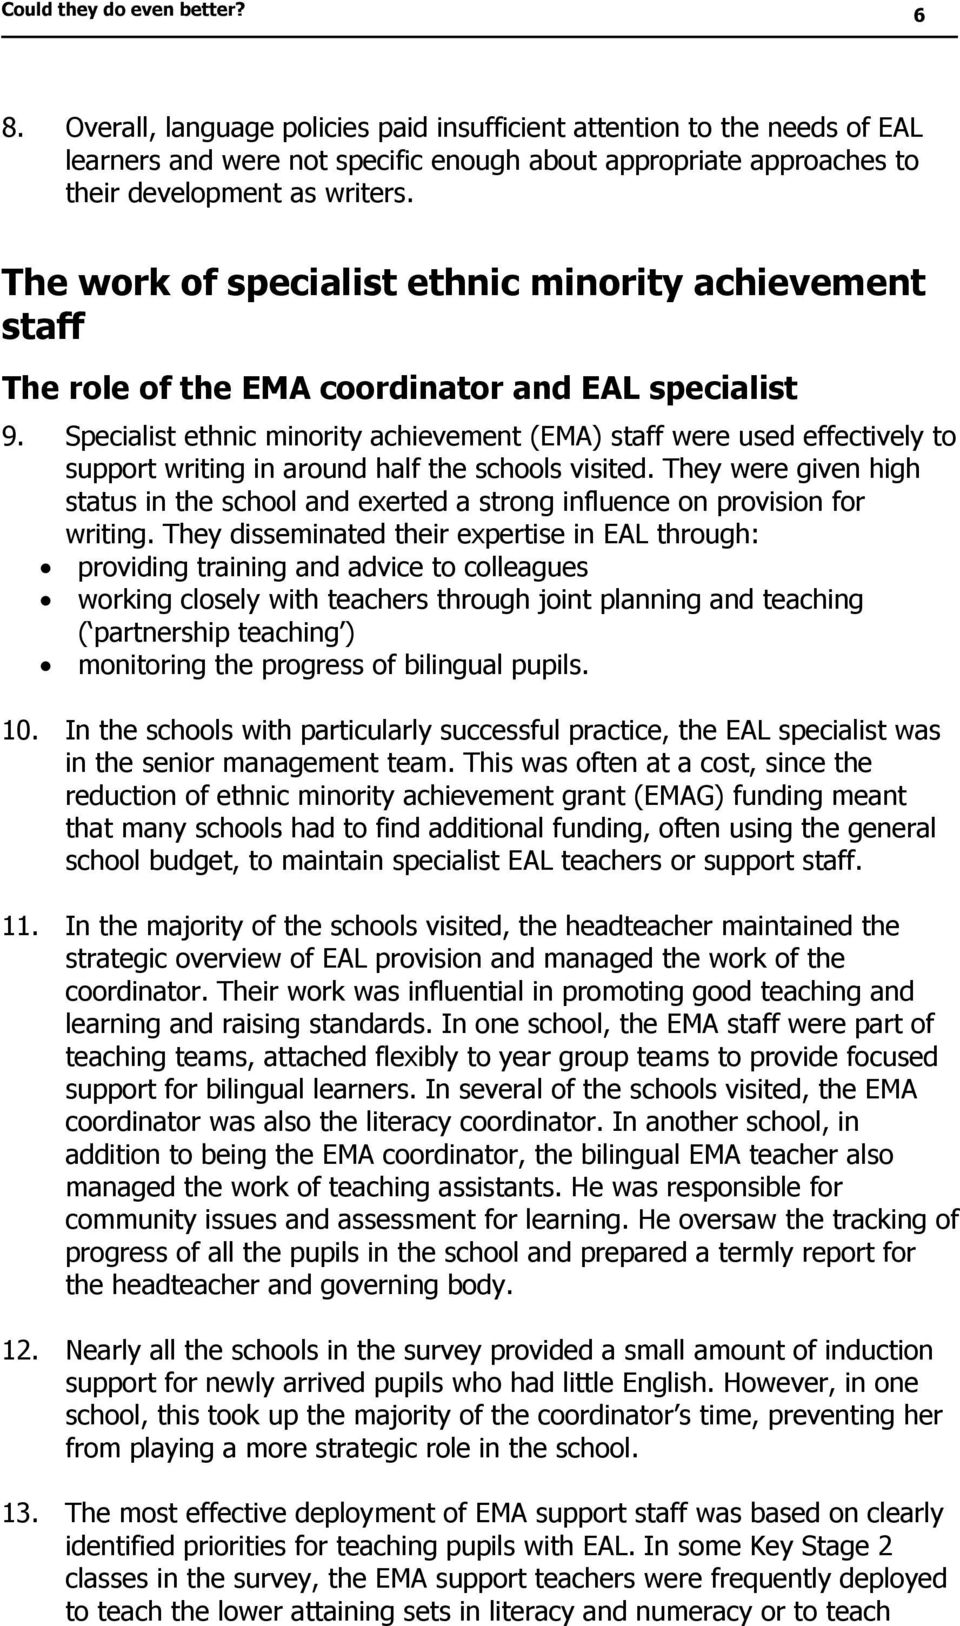 The work of specialist ethnic minority achievement staff The role of the EMA coordinator and EAL specialist 9.